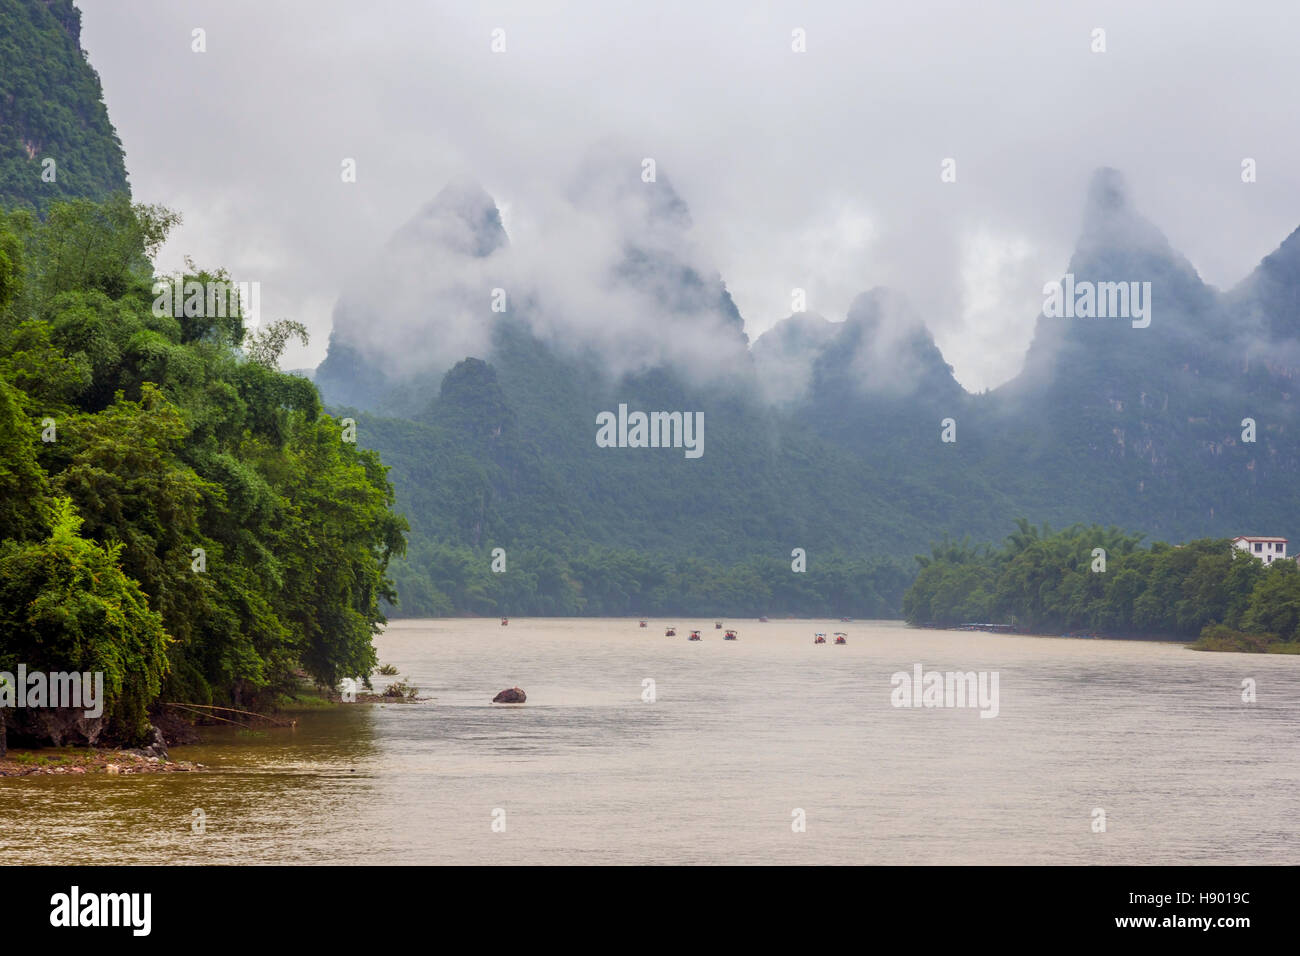 Bamboo rafts on Li river surrounded by karst mountains, Guilin, China Stock Photo